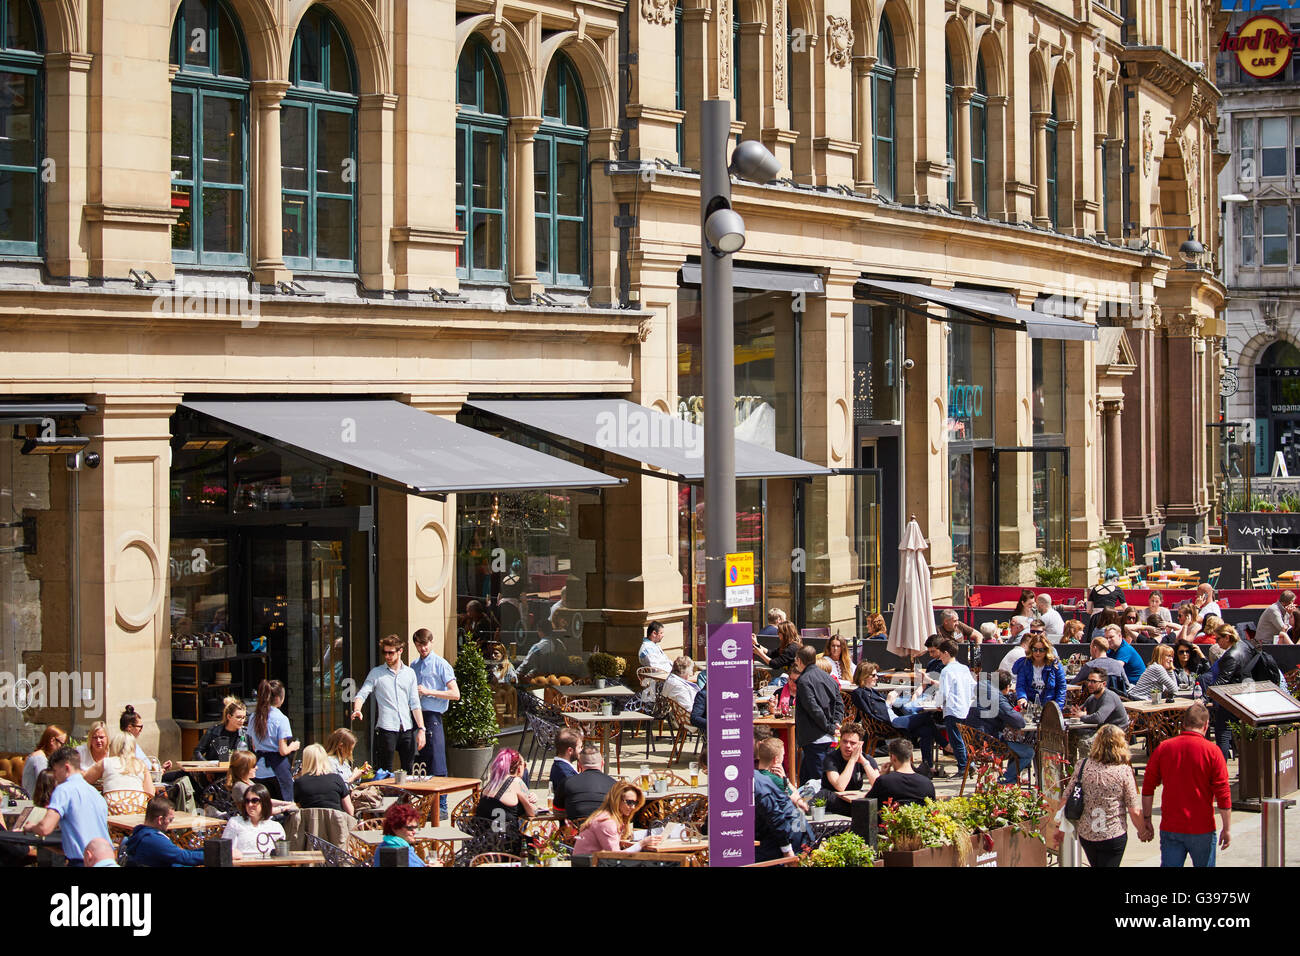 The Corn Exchange in Exchange  Square signs buildings tight Restaurant dining food eating eating drinking  out date - Stock Image